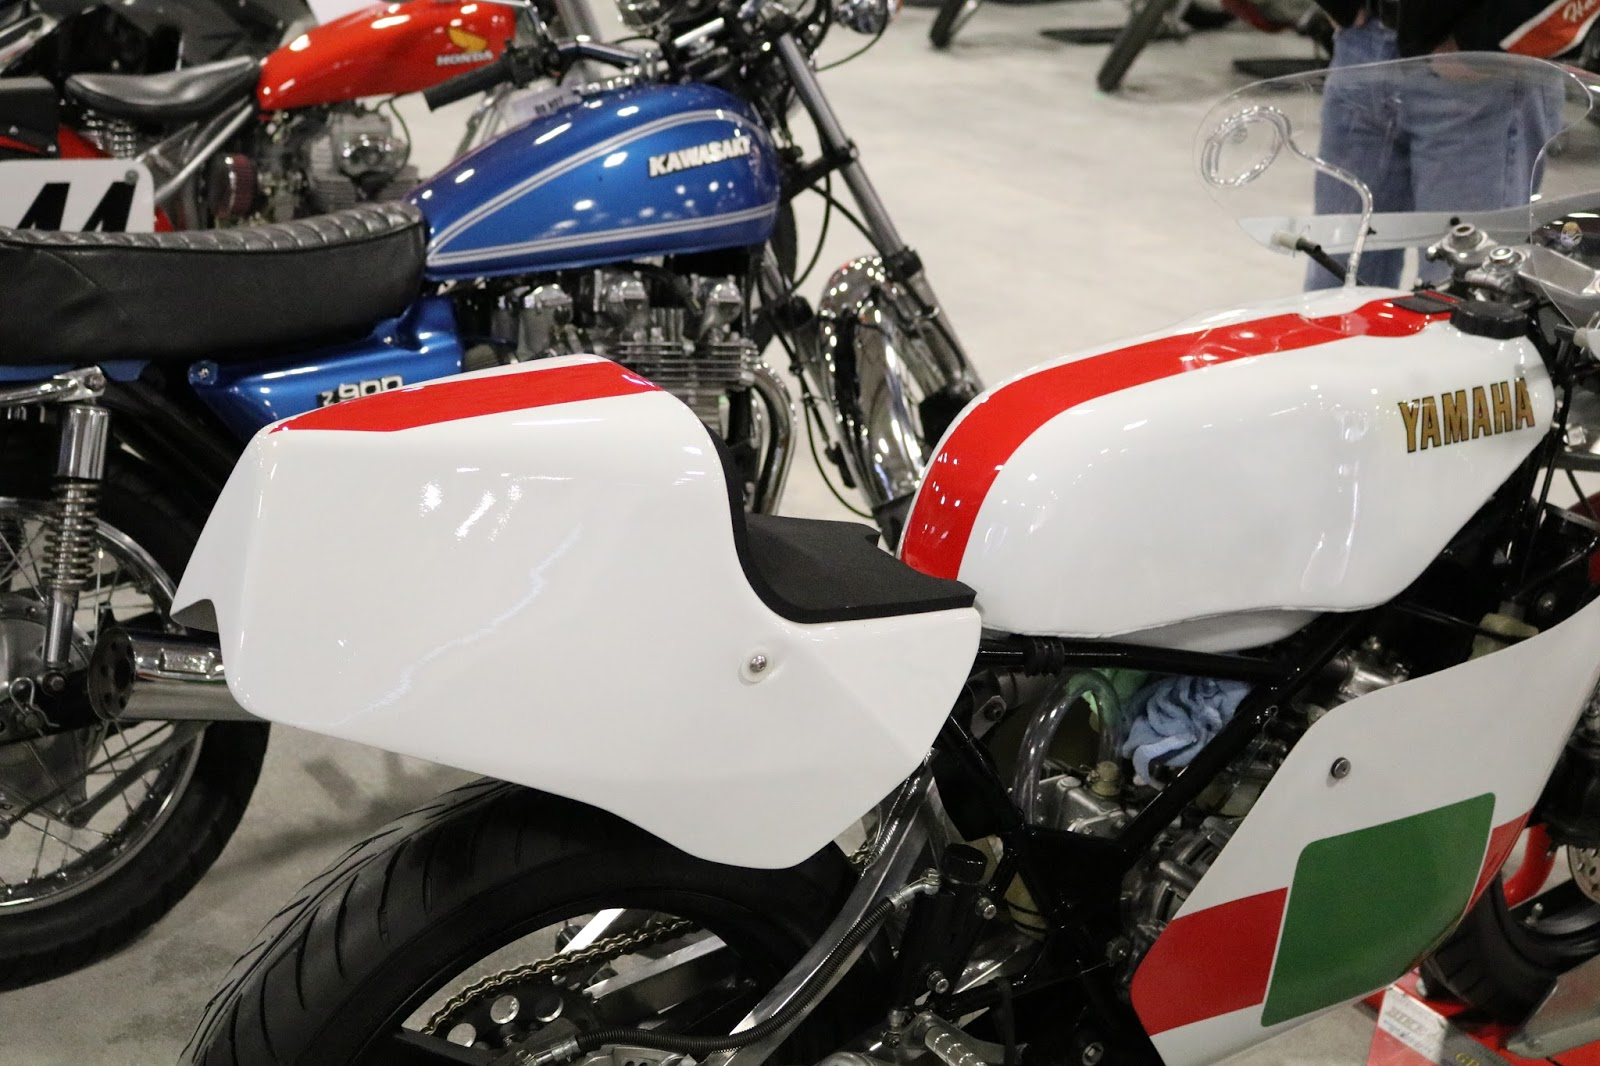 1982 yamaha tz250j road racer sold for 15 000 at the 2017 mecum las vegas motorcycle auction